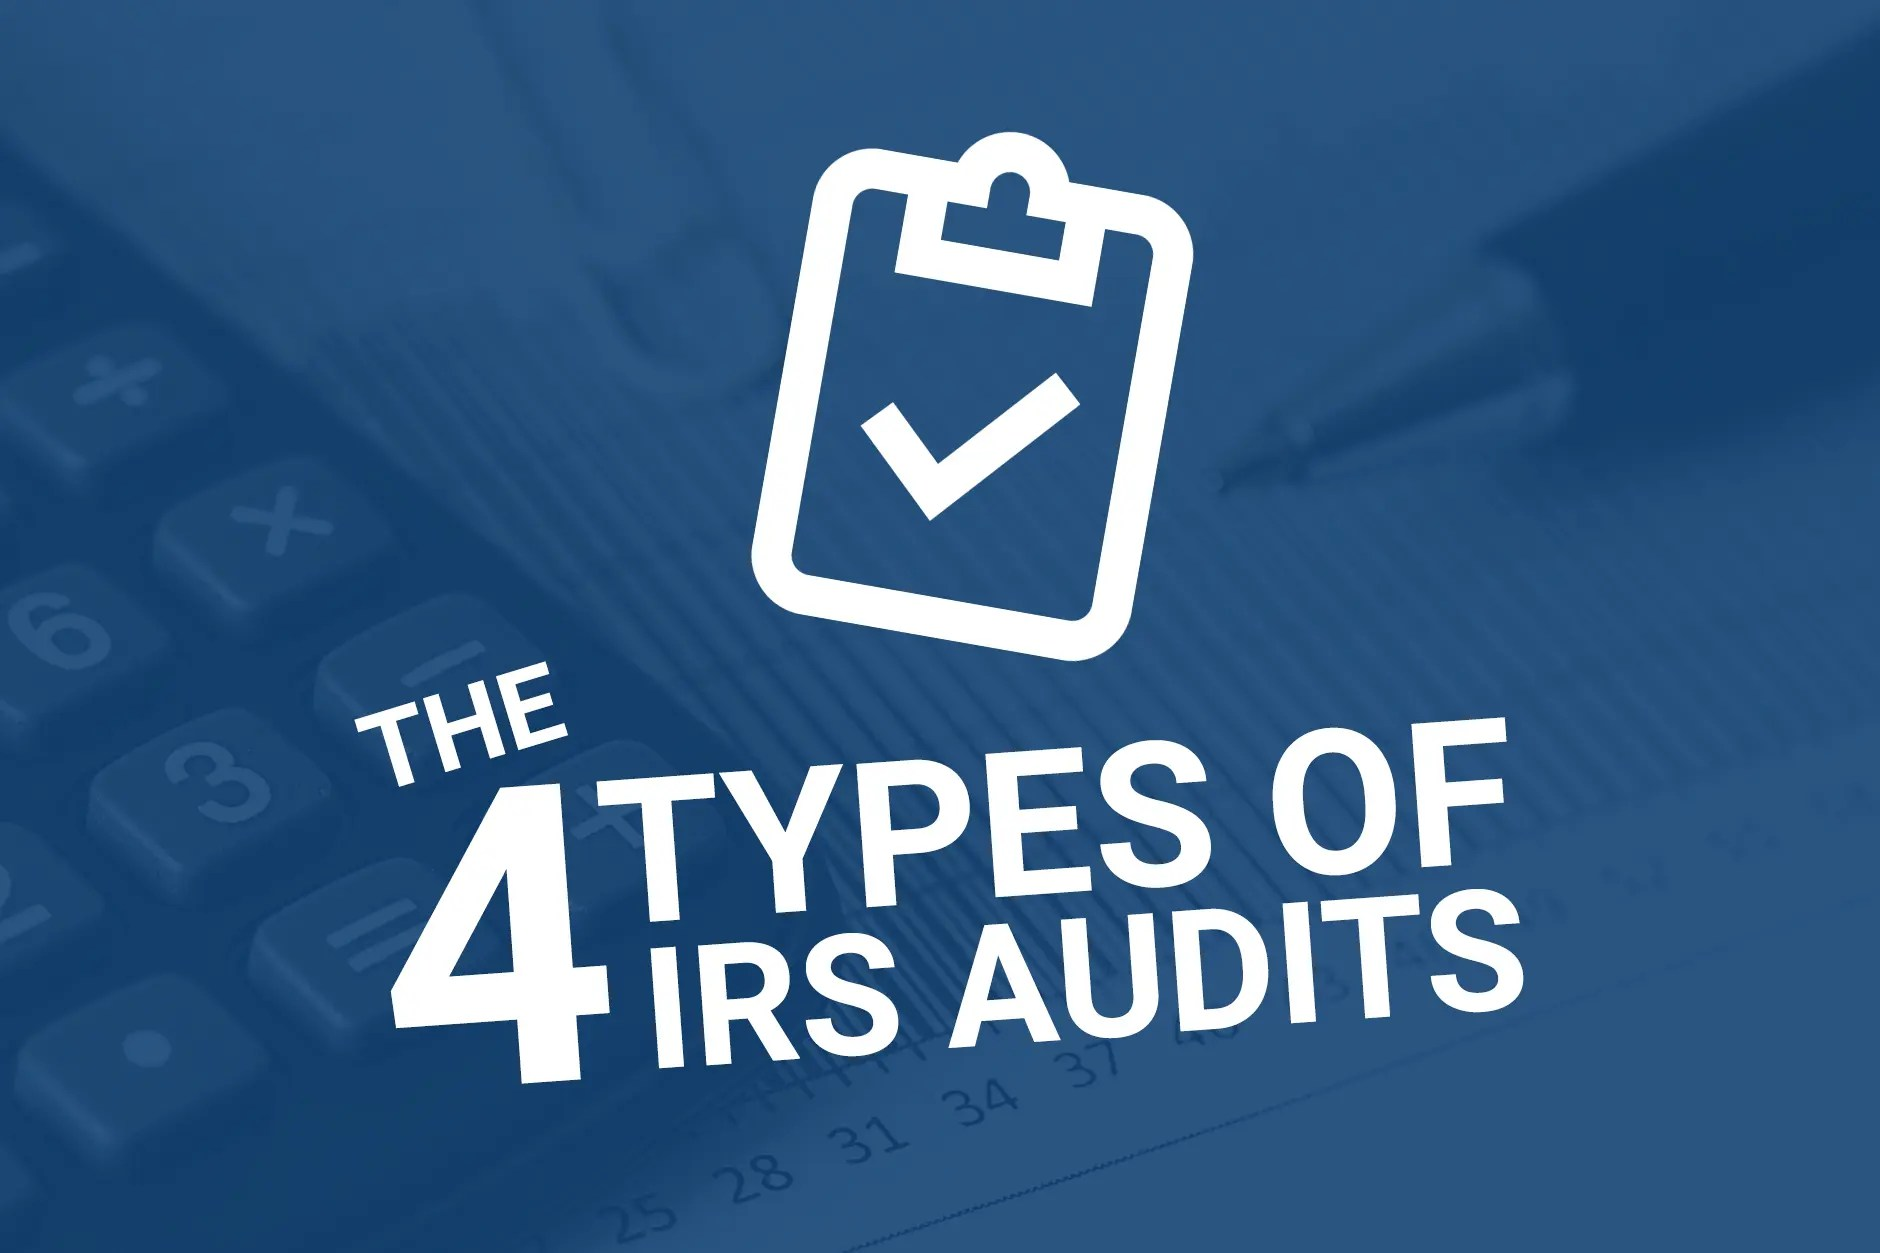 Tax Attorney Cover Letter The Four Types Of Tax Audits Rjs Law A Tax Law Firm